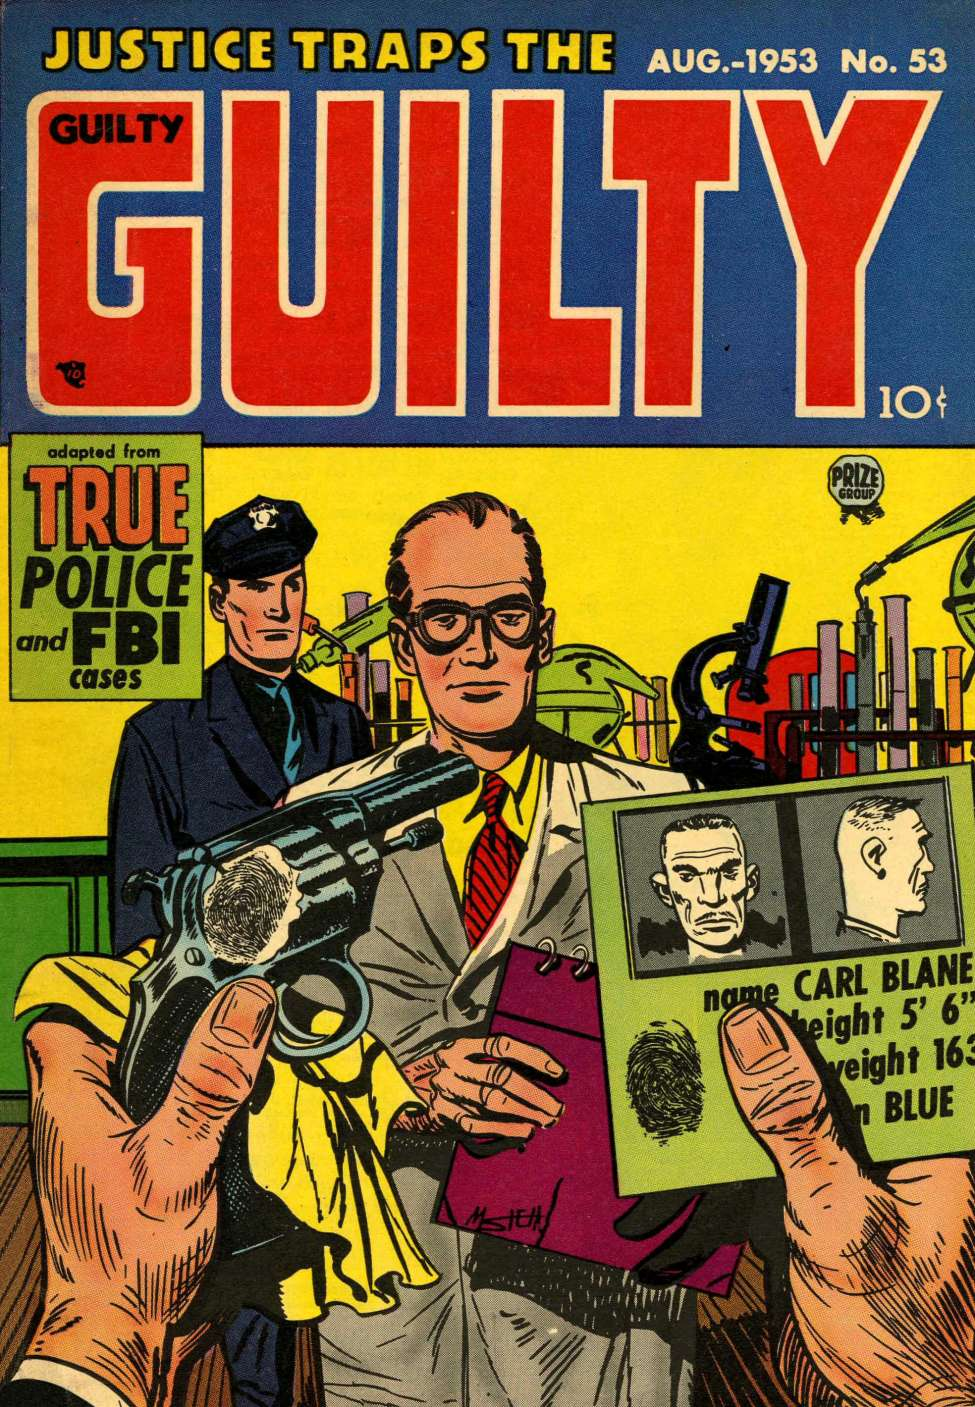 Comic Book Cover For Justice Traps the Guilty v6 11 (53) - Version 1